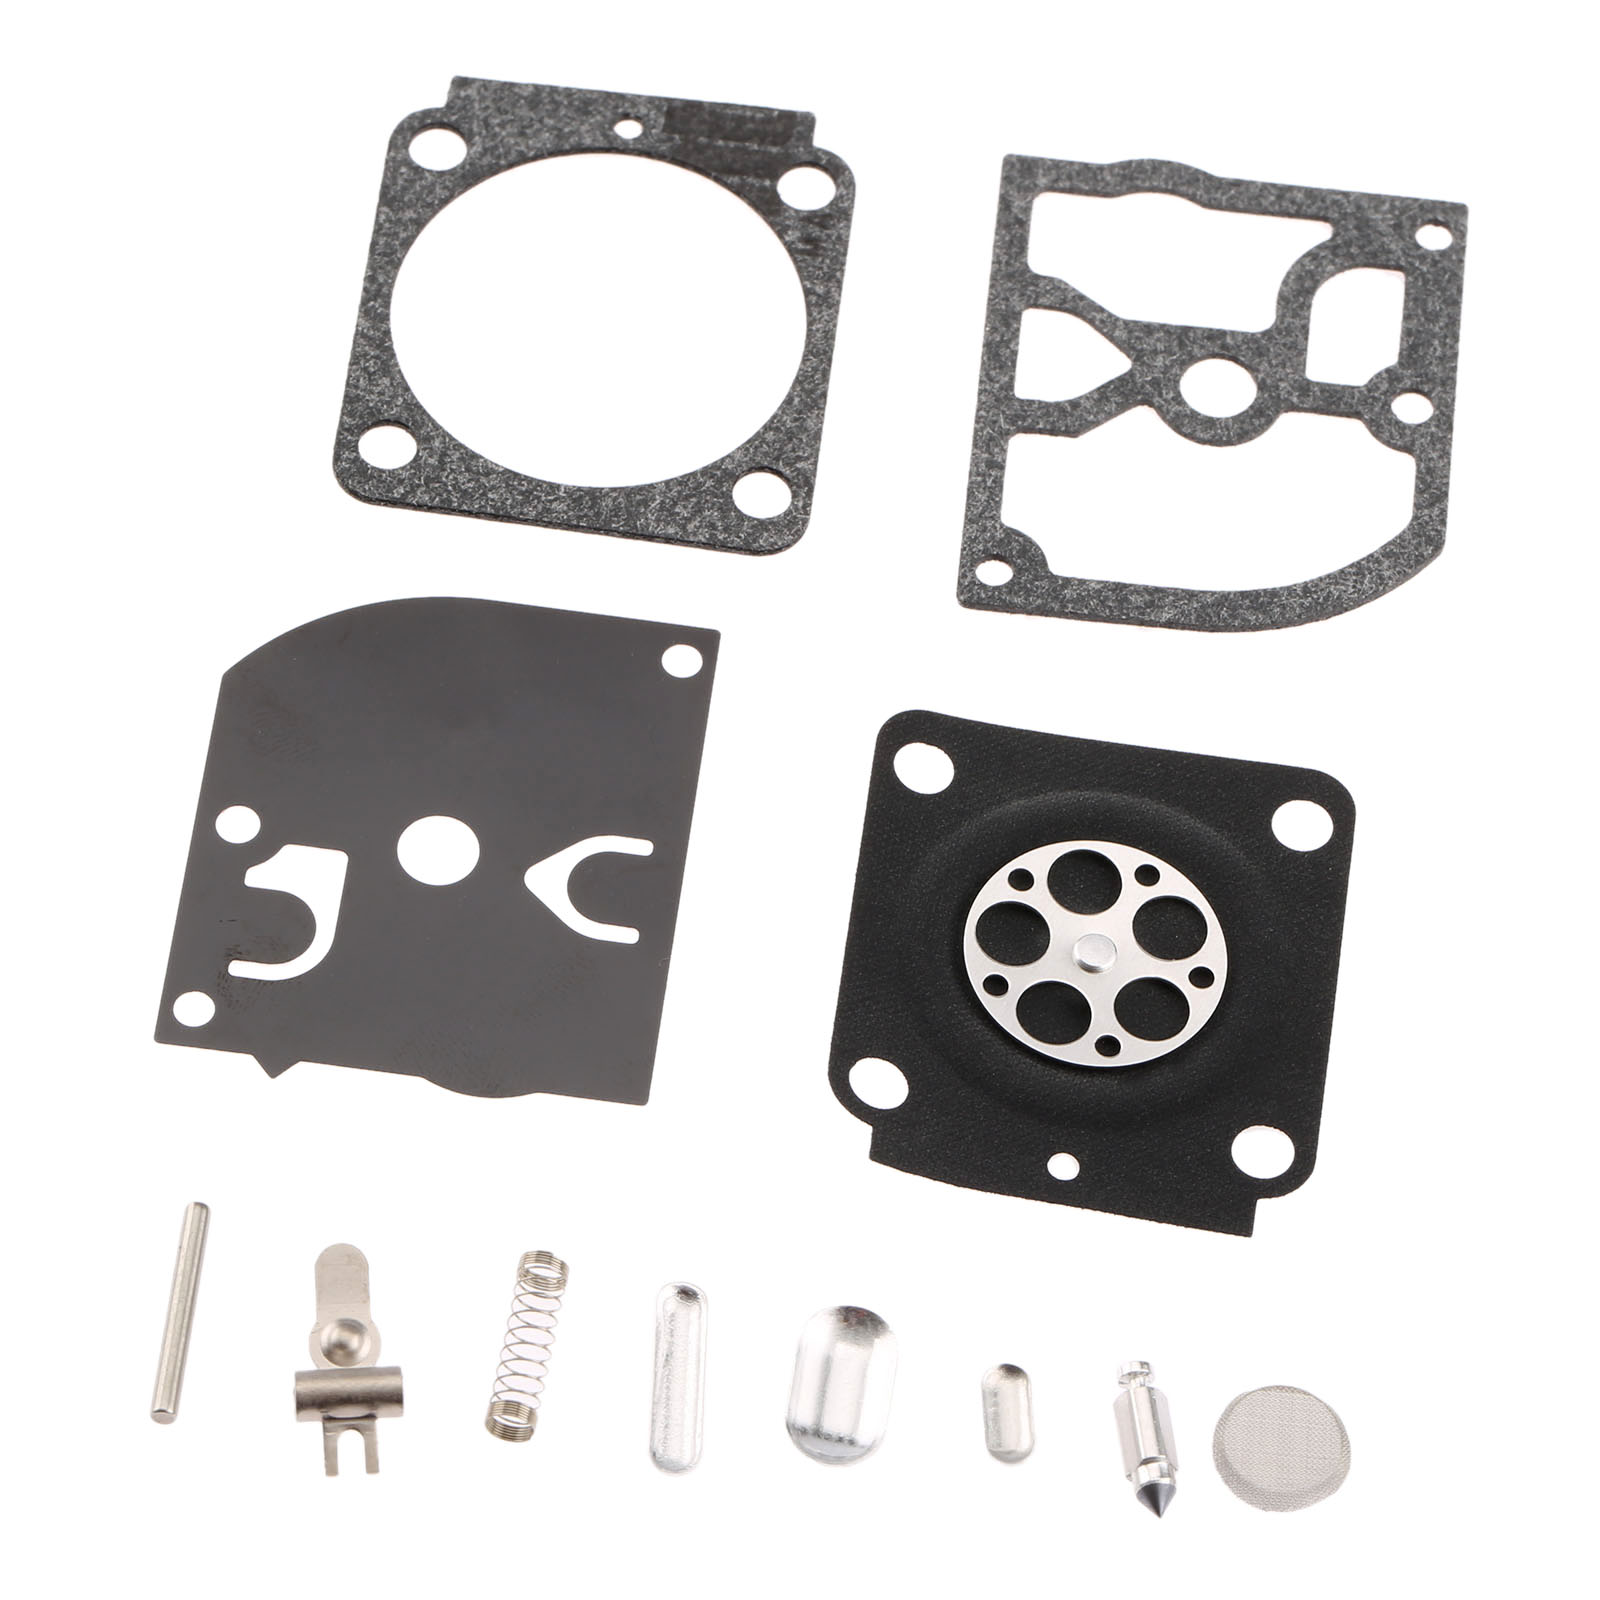 Carburetor Repair Kit Chainsaw Trimmer Parts RB-100 Gasket Diaphragm For Zama STIHL HS45 FS55 FS38 BG45 MM55 TILLER ZAMA C1Q пуловер quelle rick cardona by heine 31107 page 5